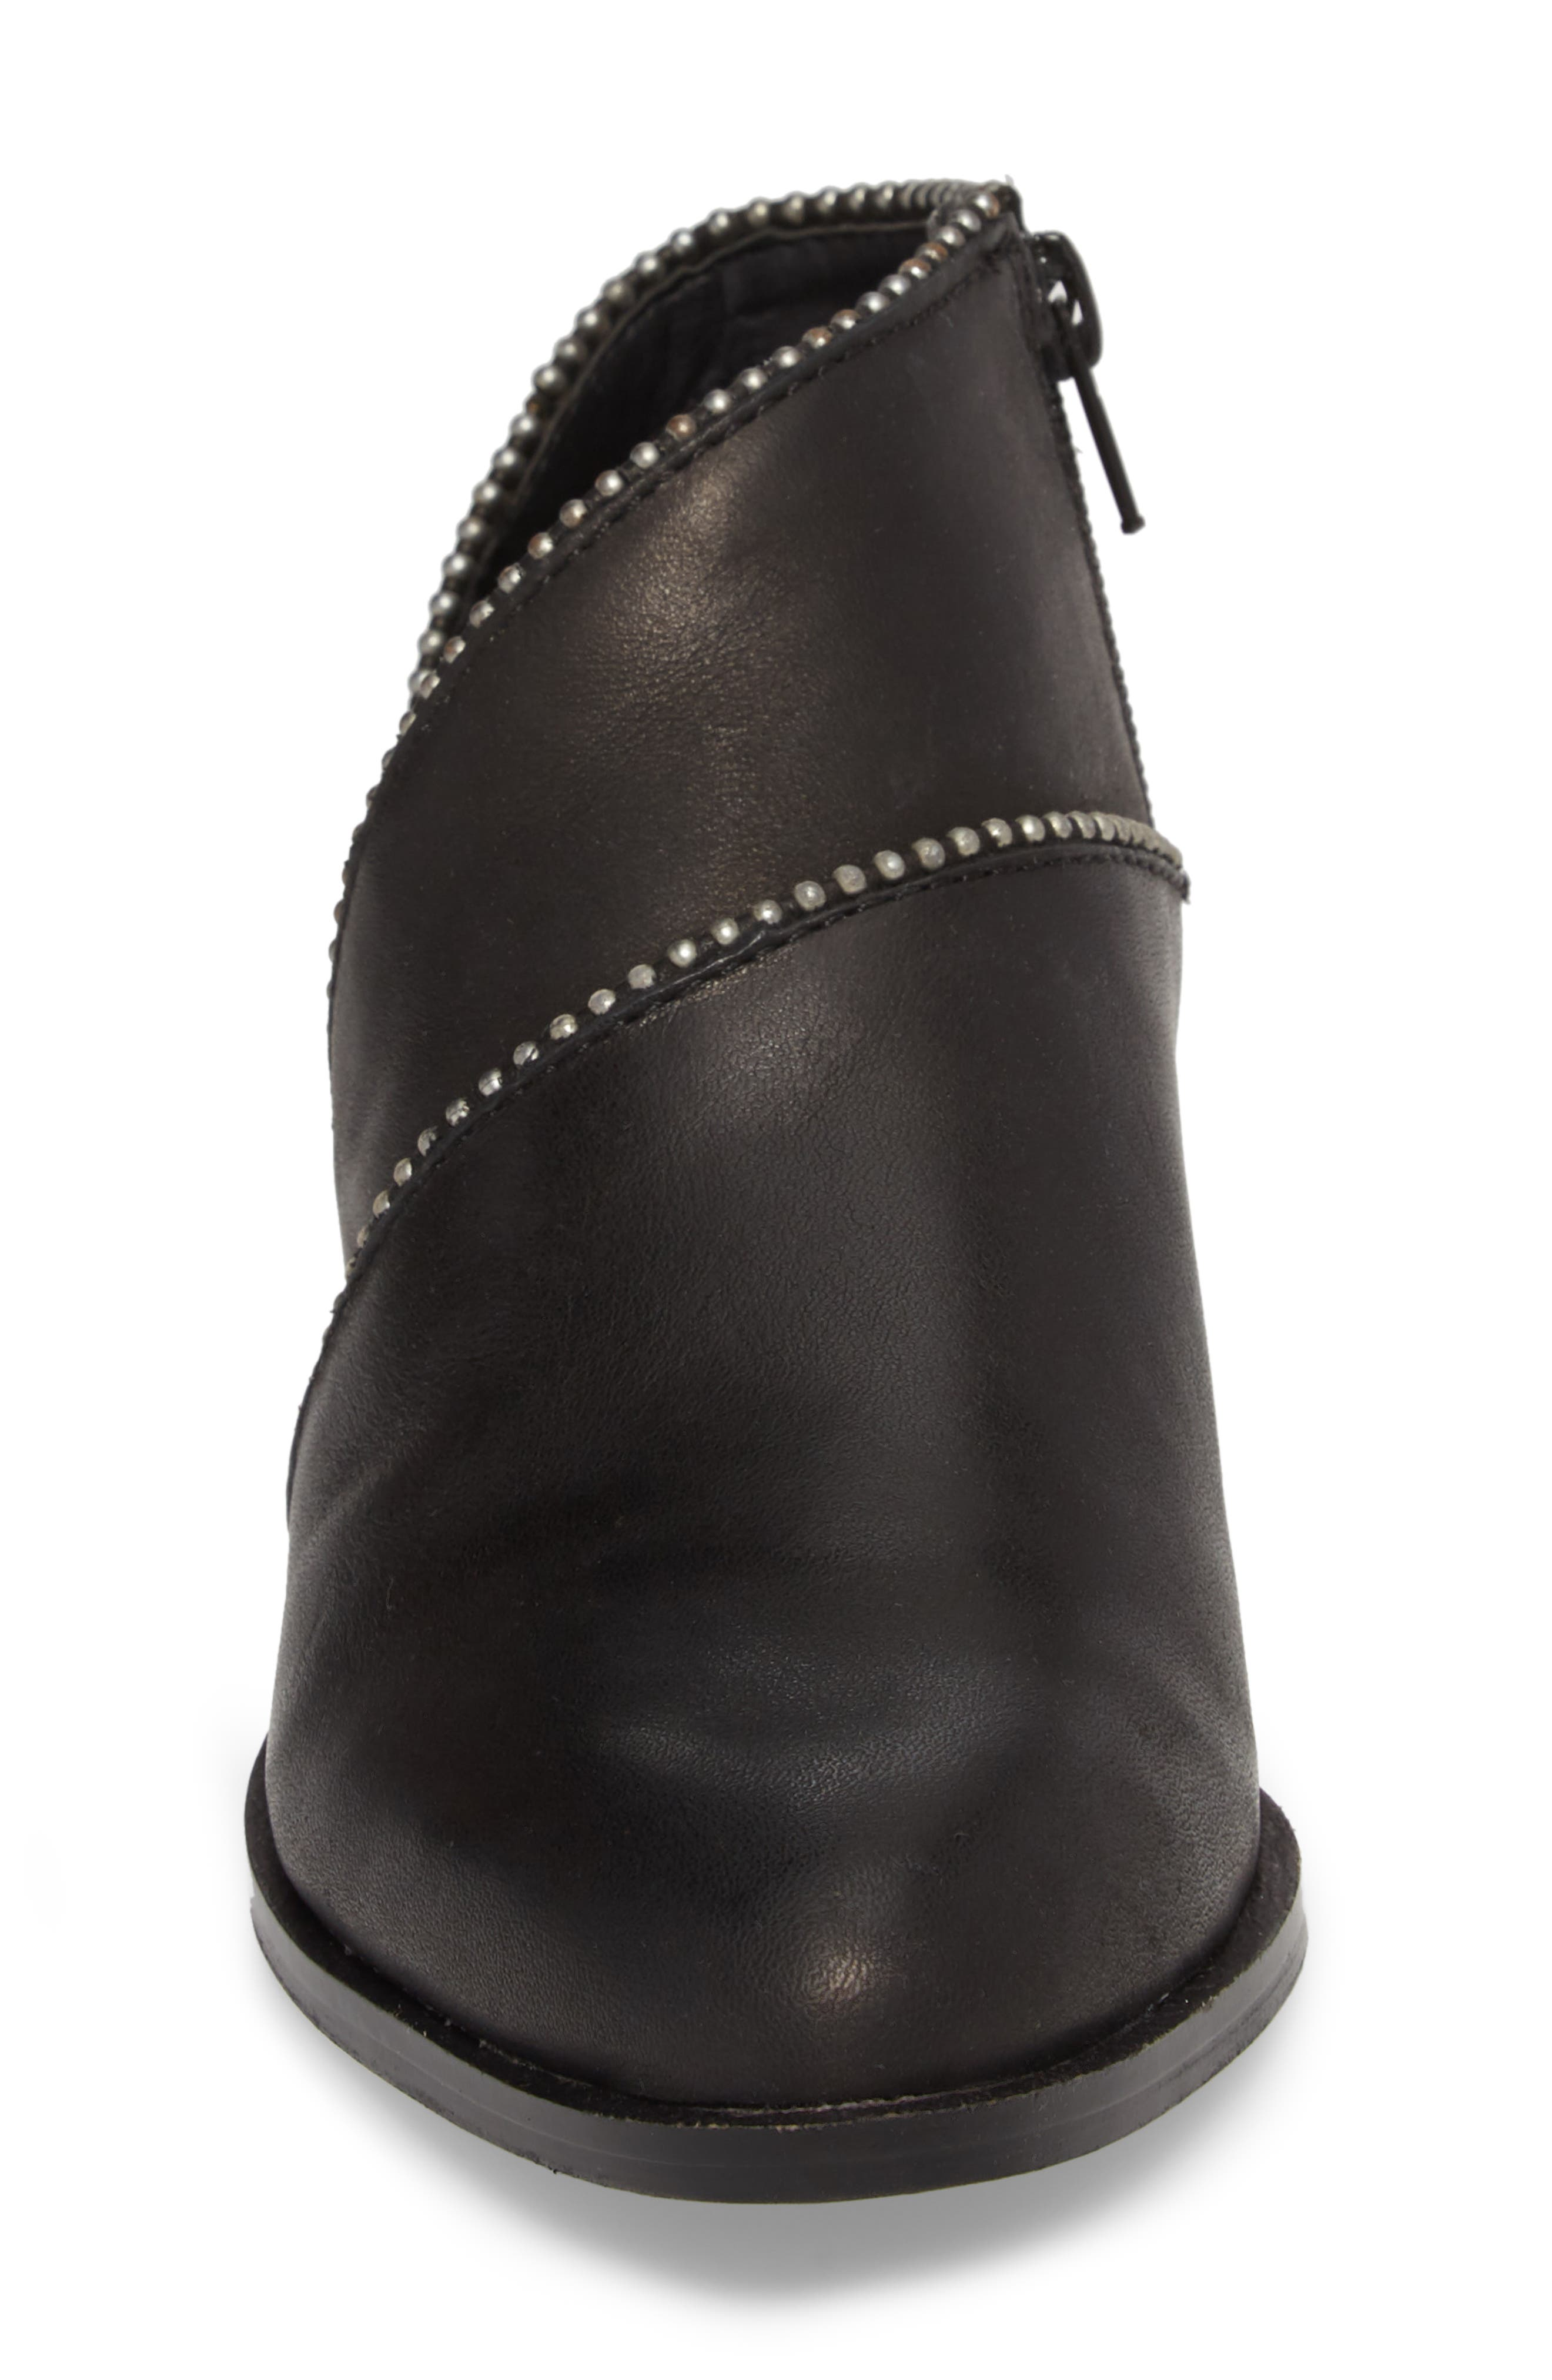 Prucella Bootie,                             Alternate thumbnail 4, color,                             BLACK LEATHER